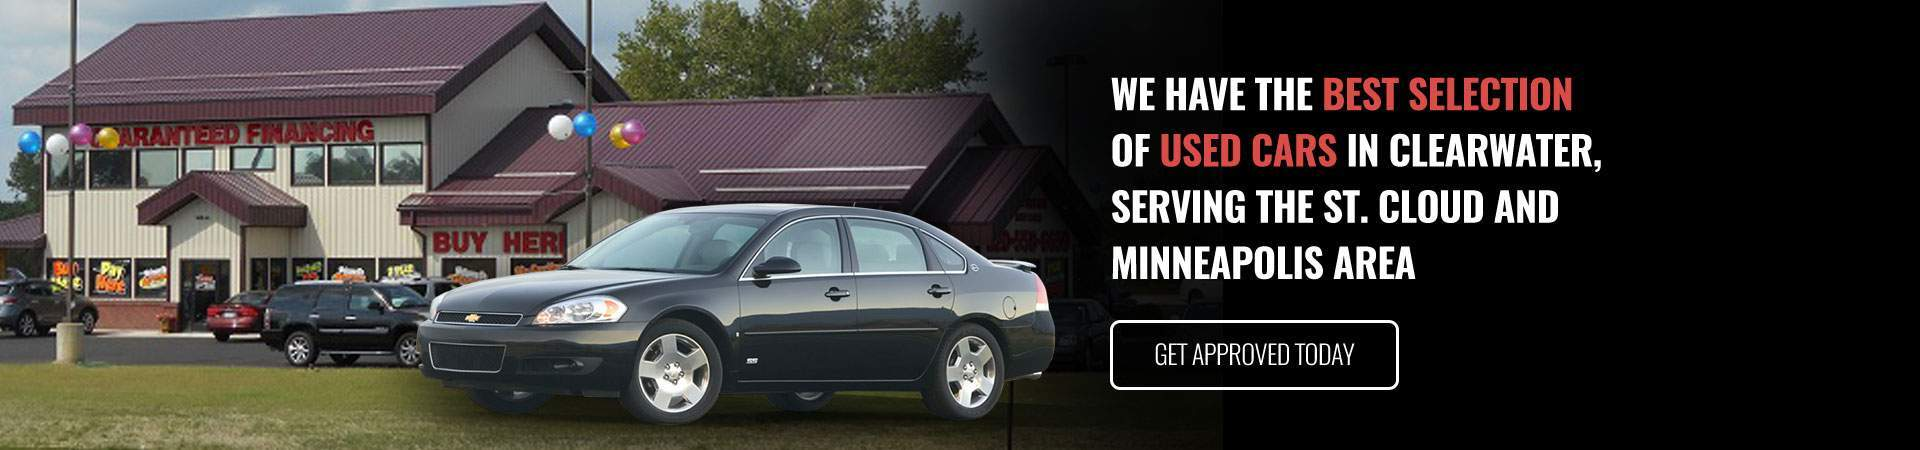 Buy Here Pay Here Car Dealers Mn